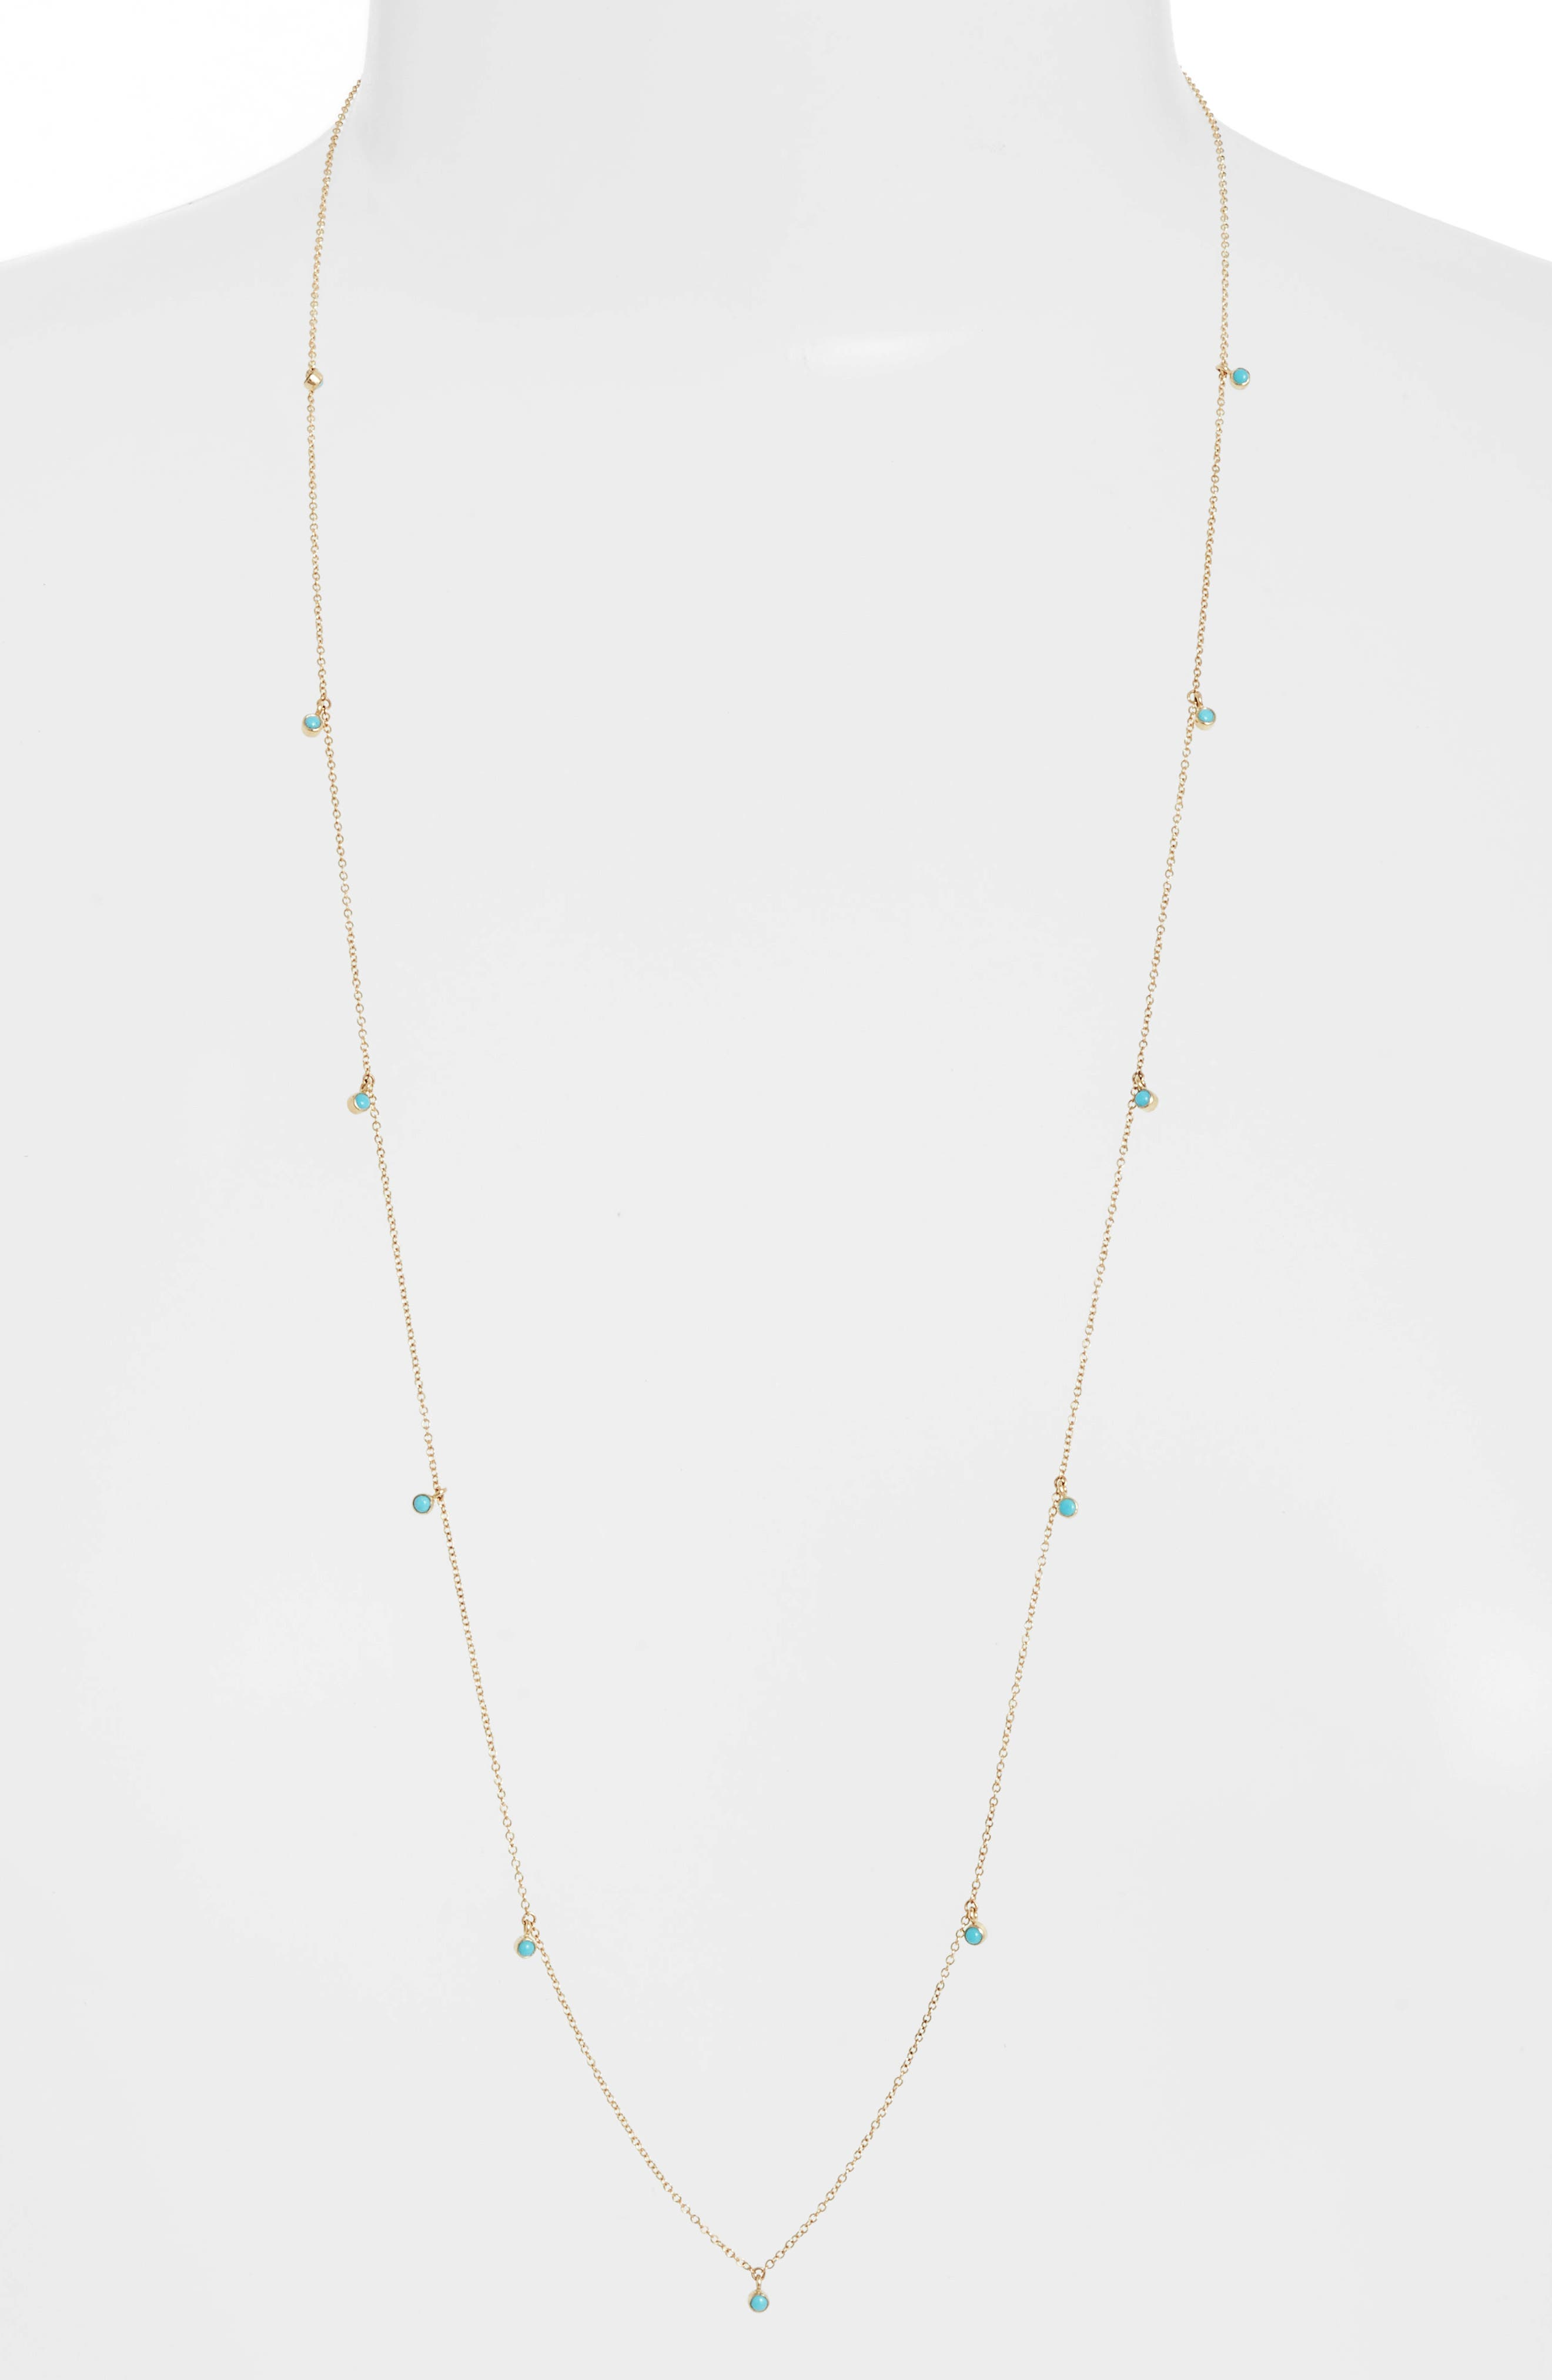 Zoe Chicco Dangling Turquoise Station Long Necklace